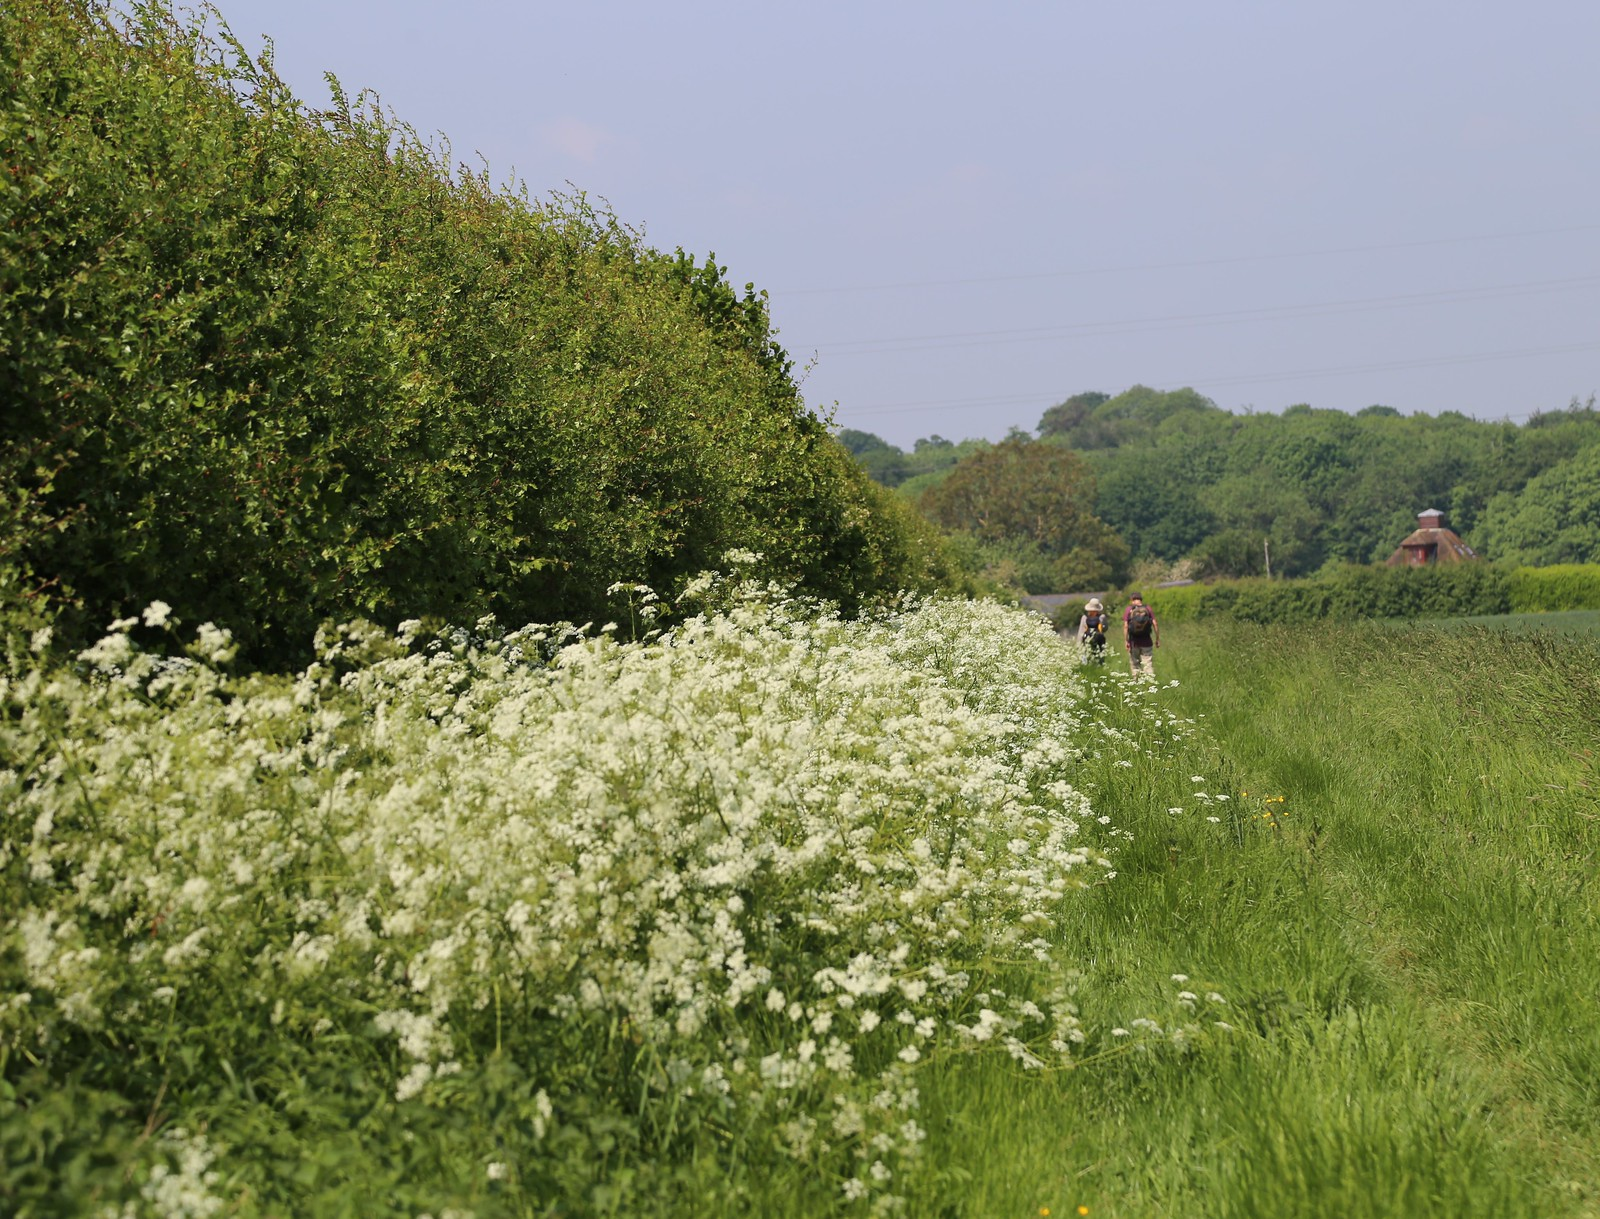 Along the edge - Otford to Eynsford Walk